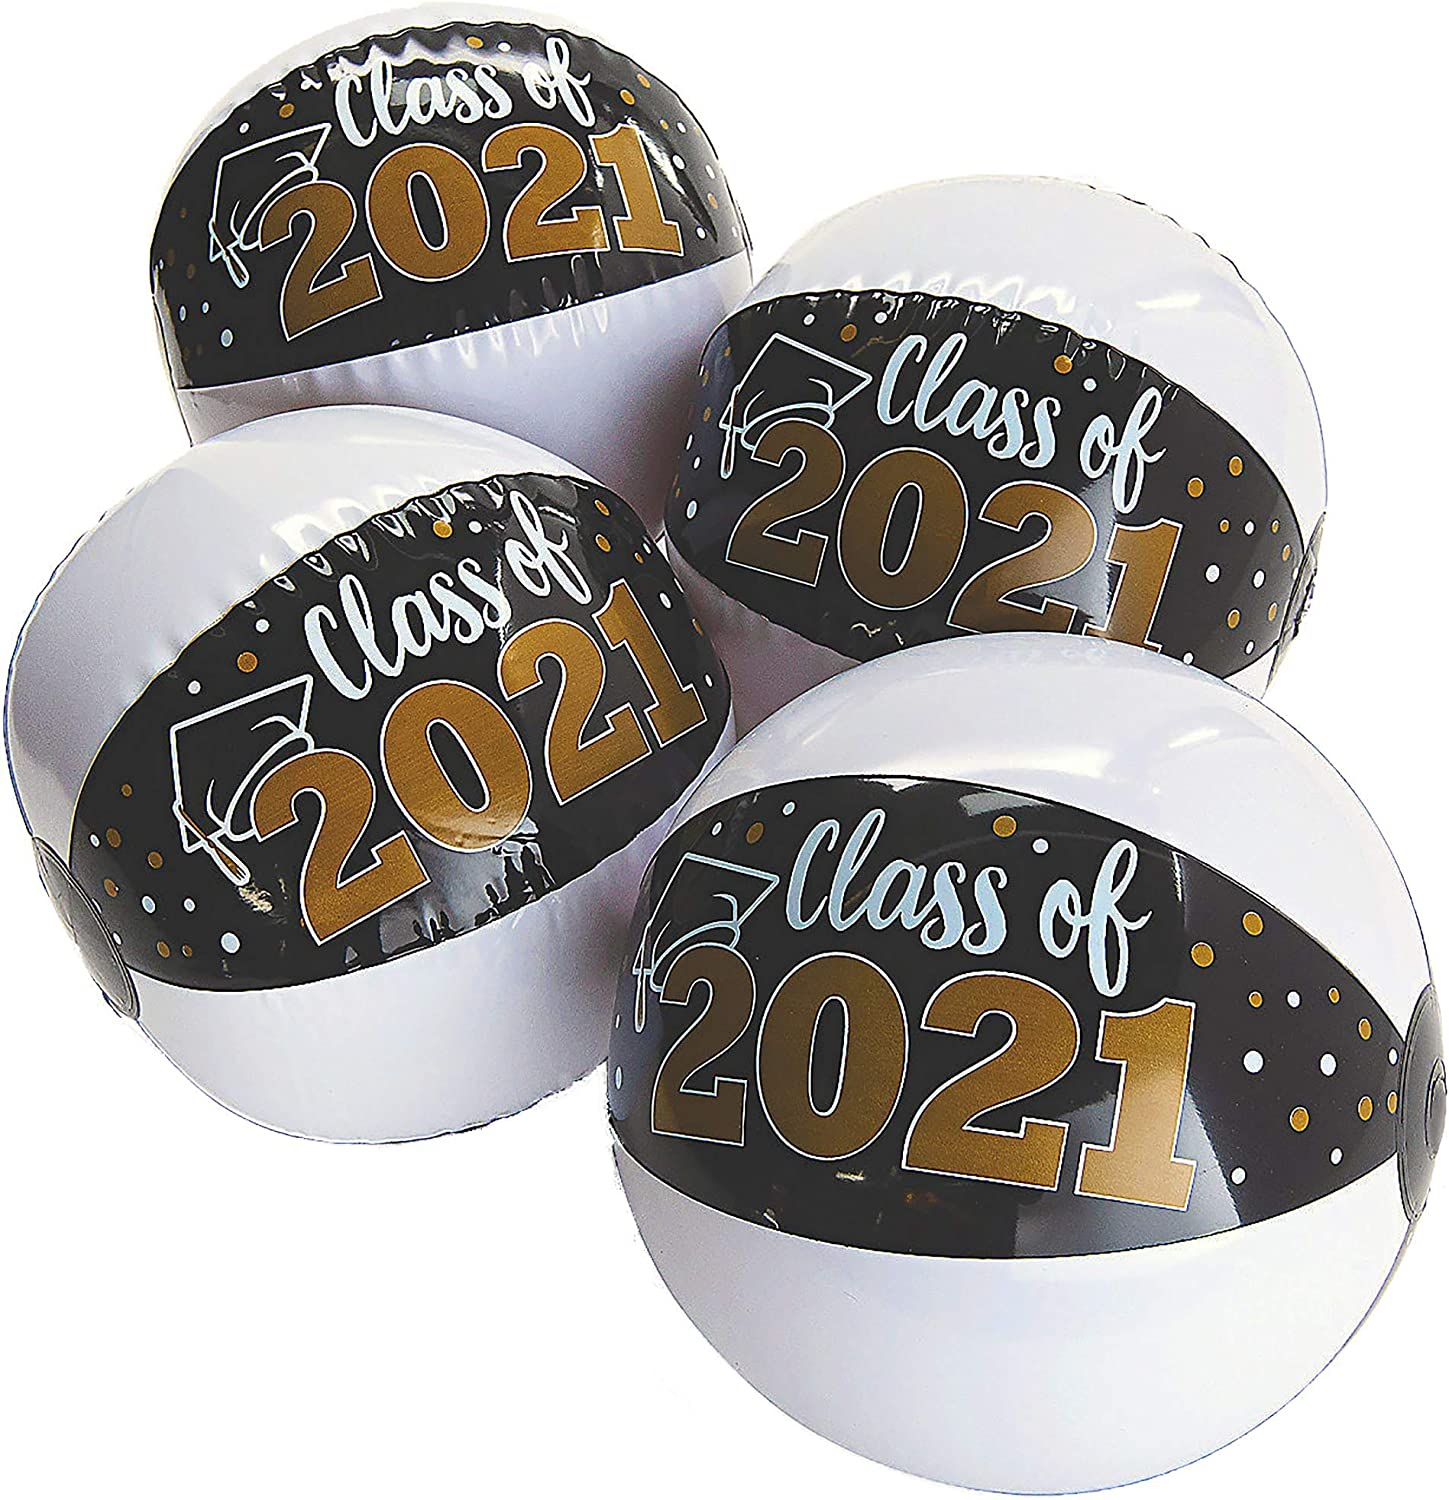 12 Pcs Graduation Beach Balls Class of 2021-11 Graduation Party Supplies Grad Party Favors Gifts for Kids Seniors Teens Adults by 4Es Novelty